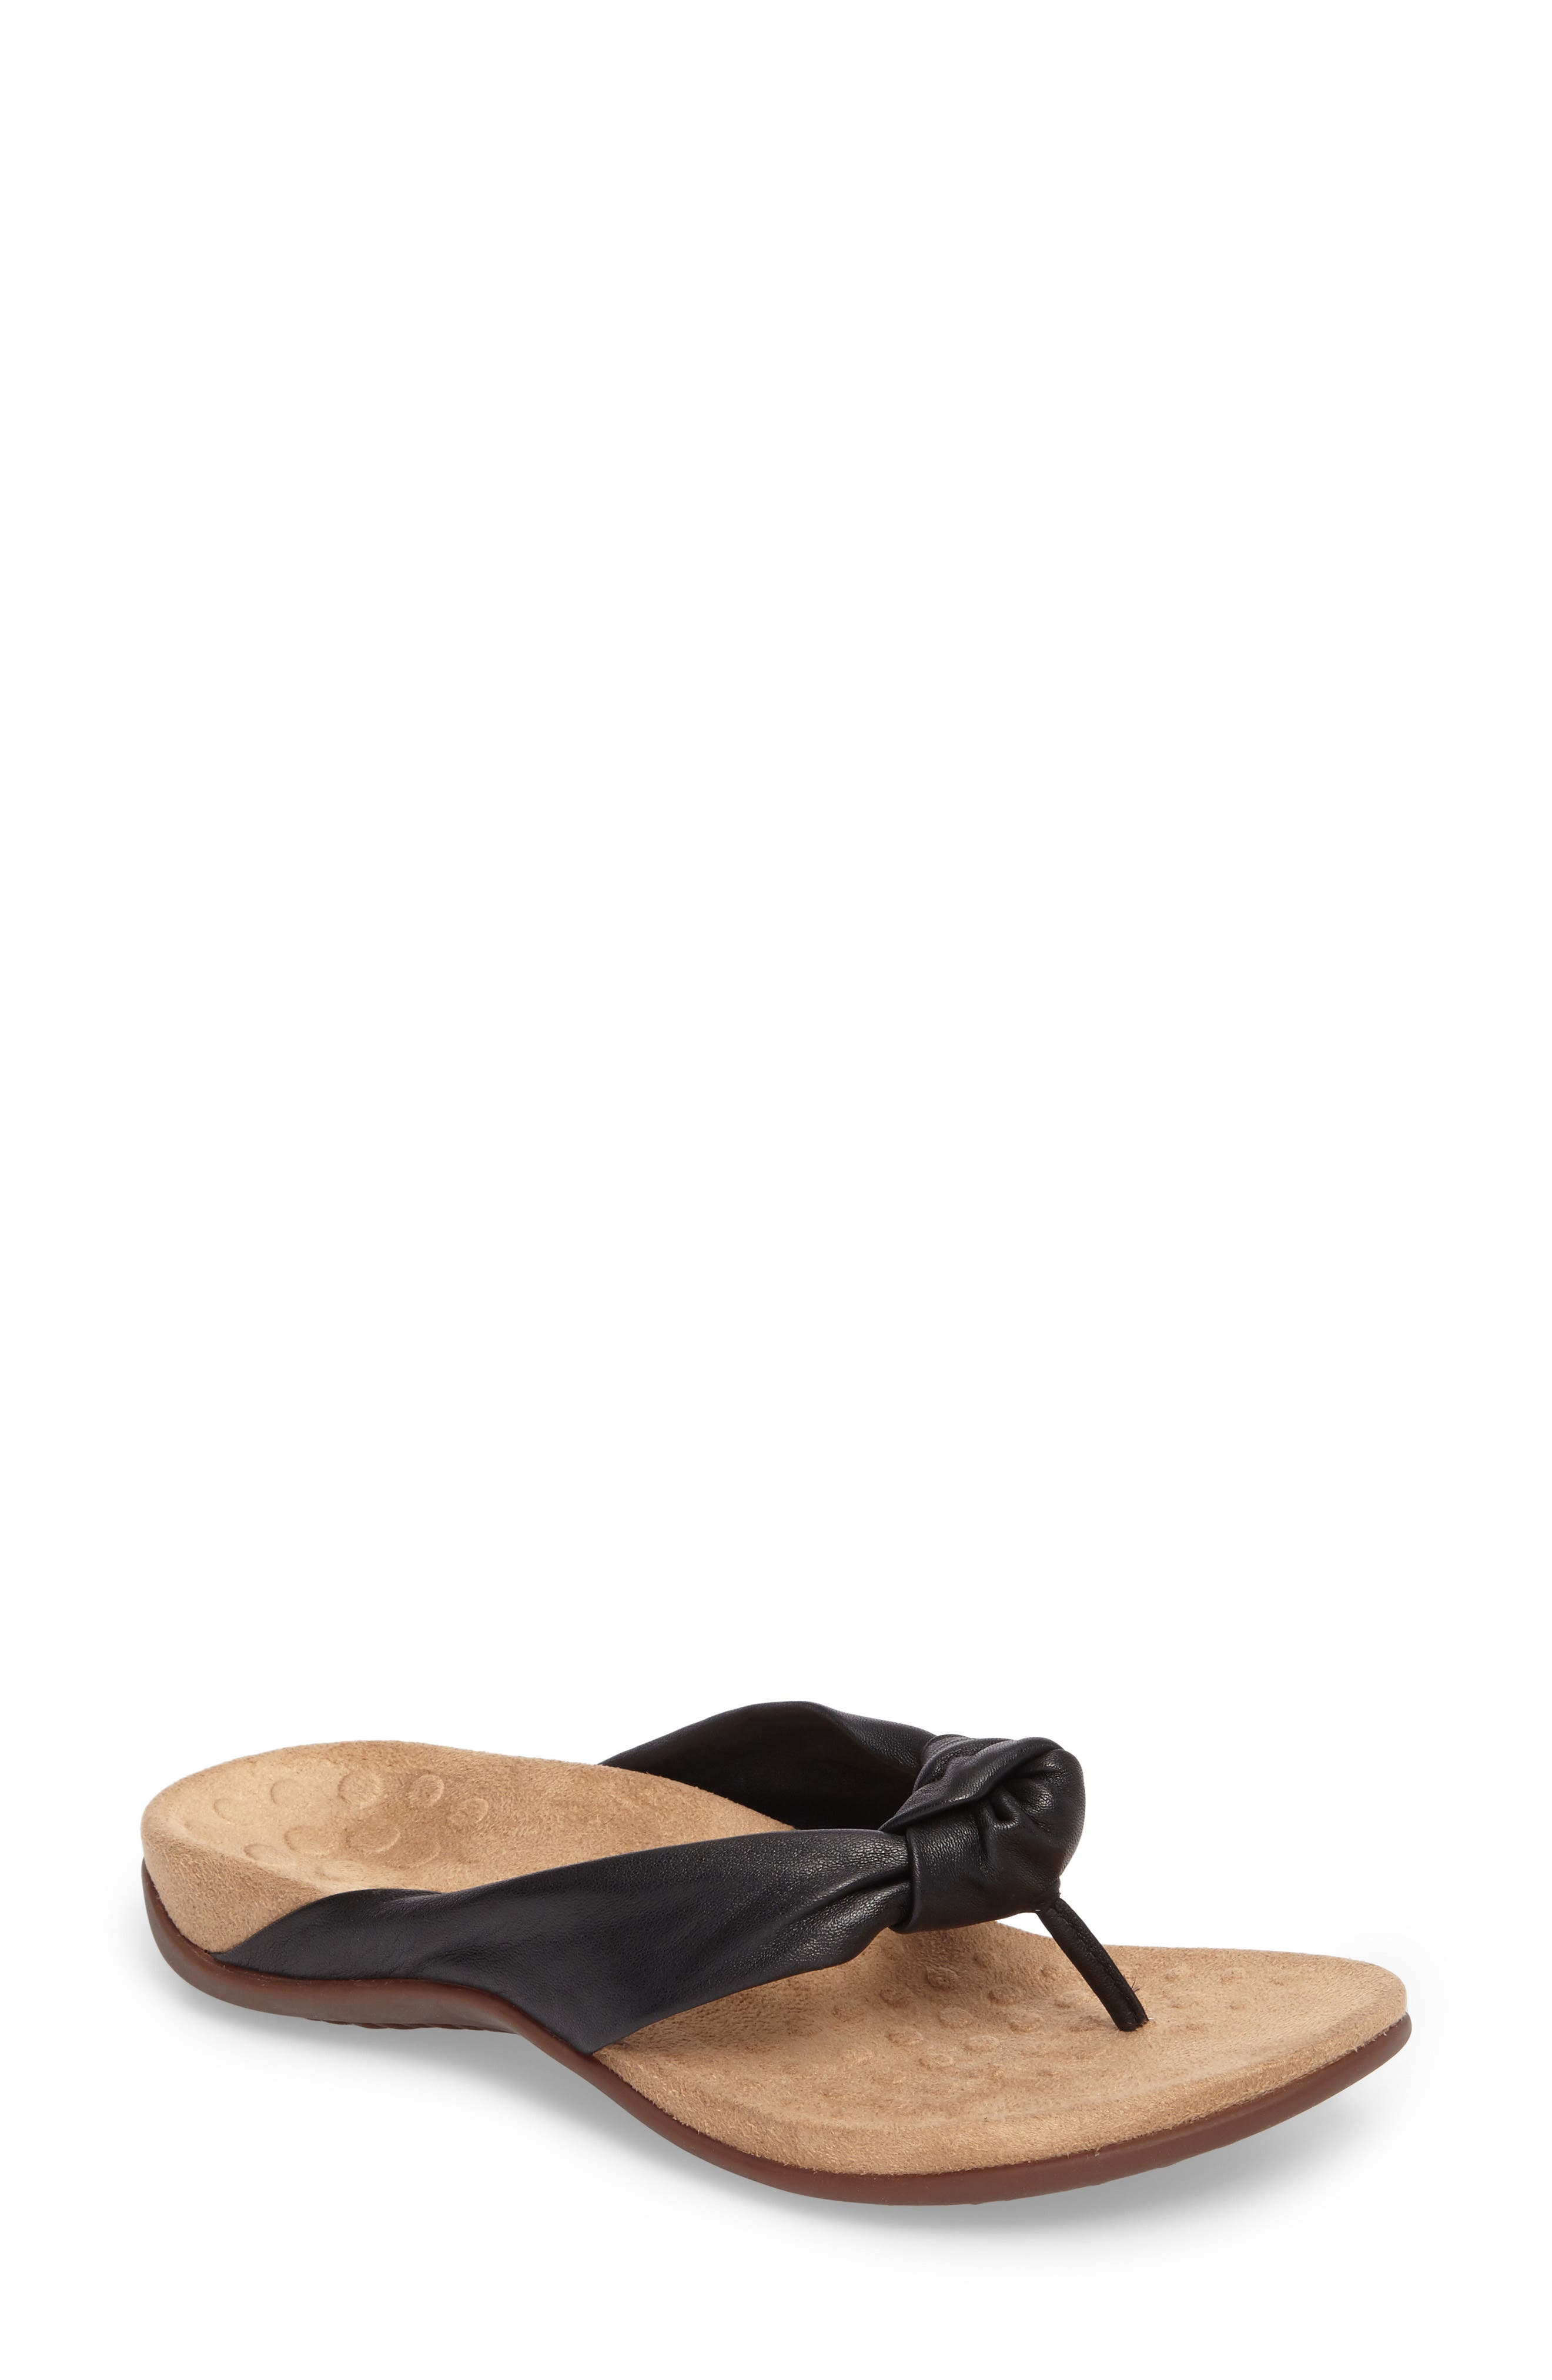 Pippa Flip Flop,                         Main,                         color, BLACK LEATHER